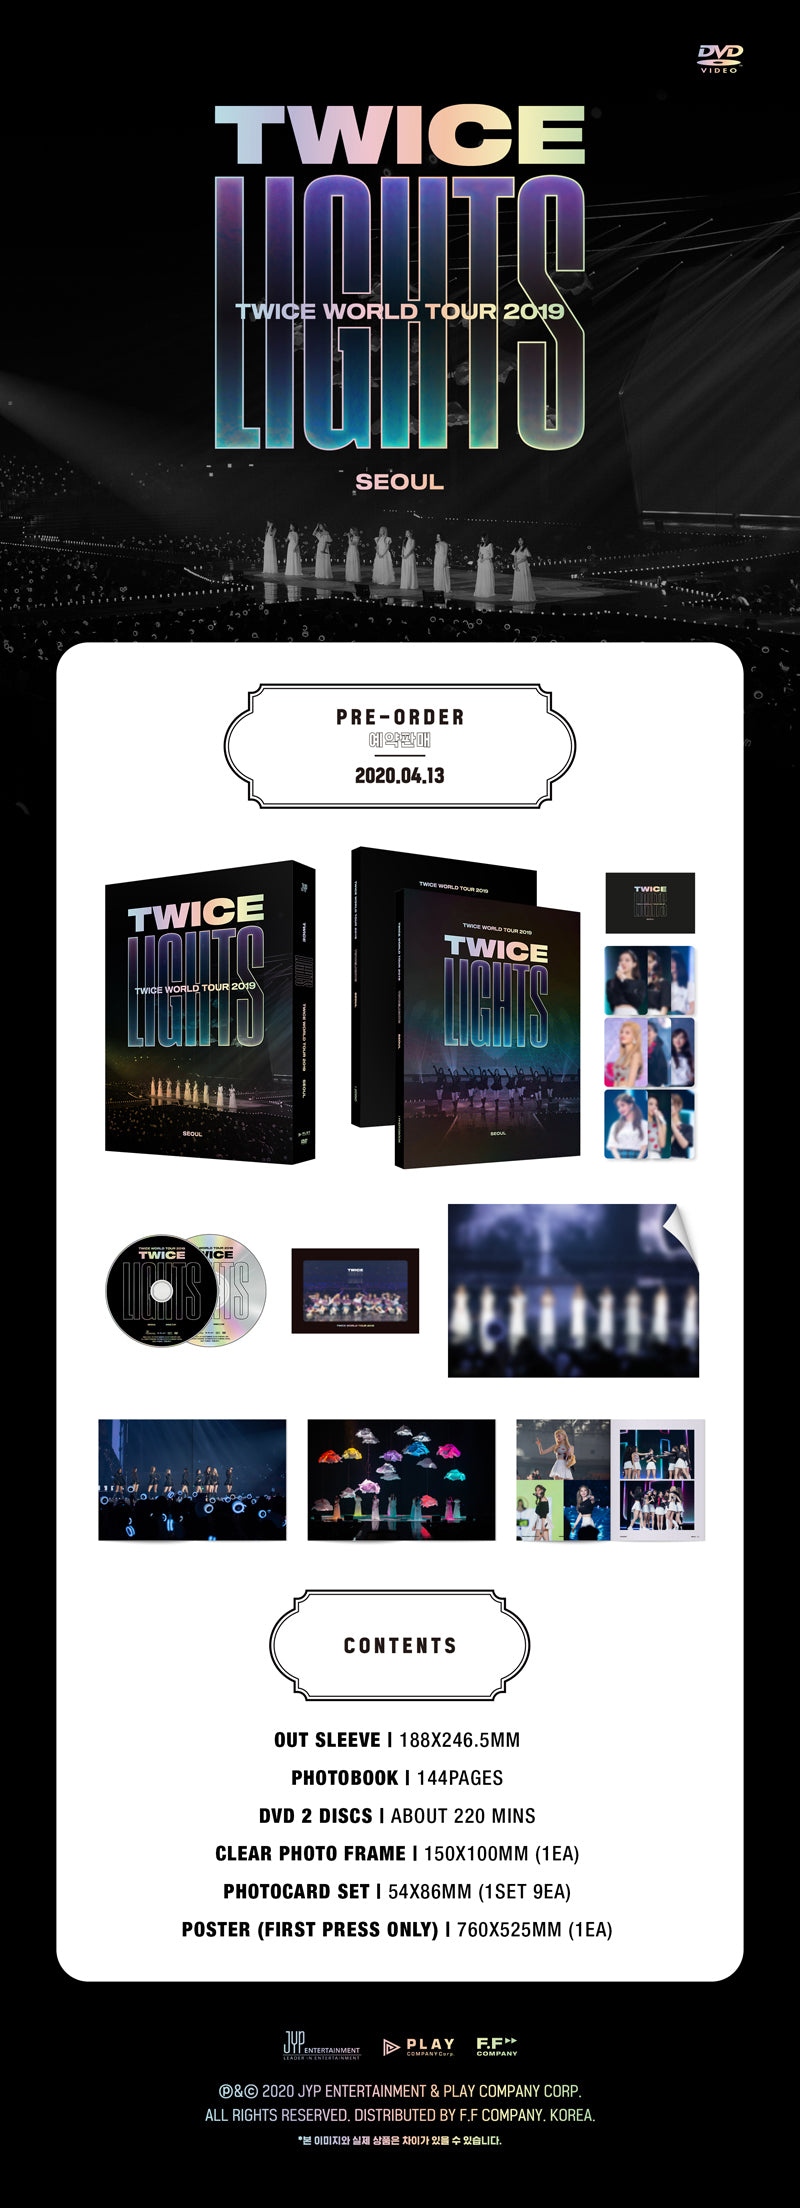 TWICE - 2019 World Tour 'TWICELIGHTS' in Seoul (DVD)